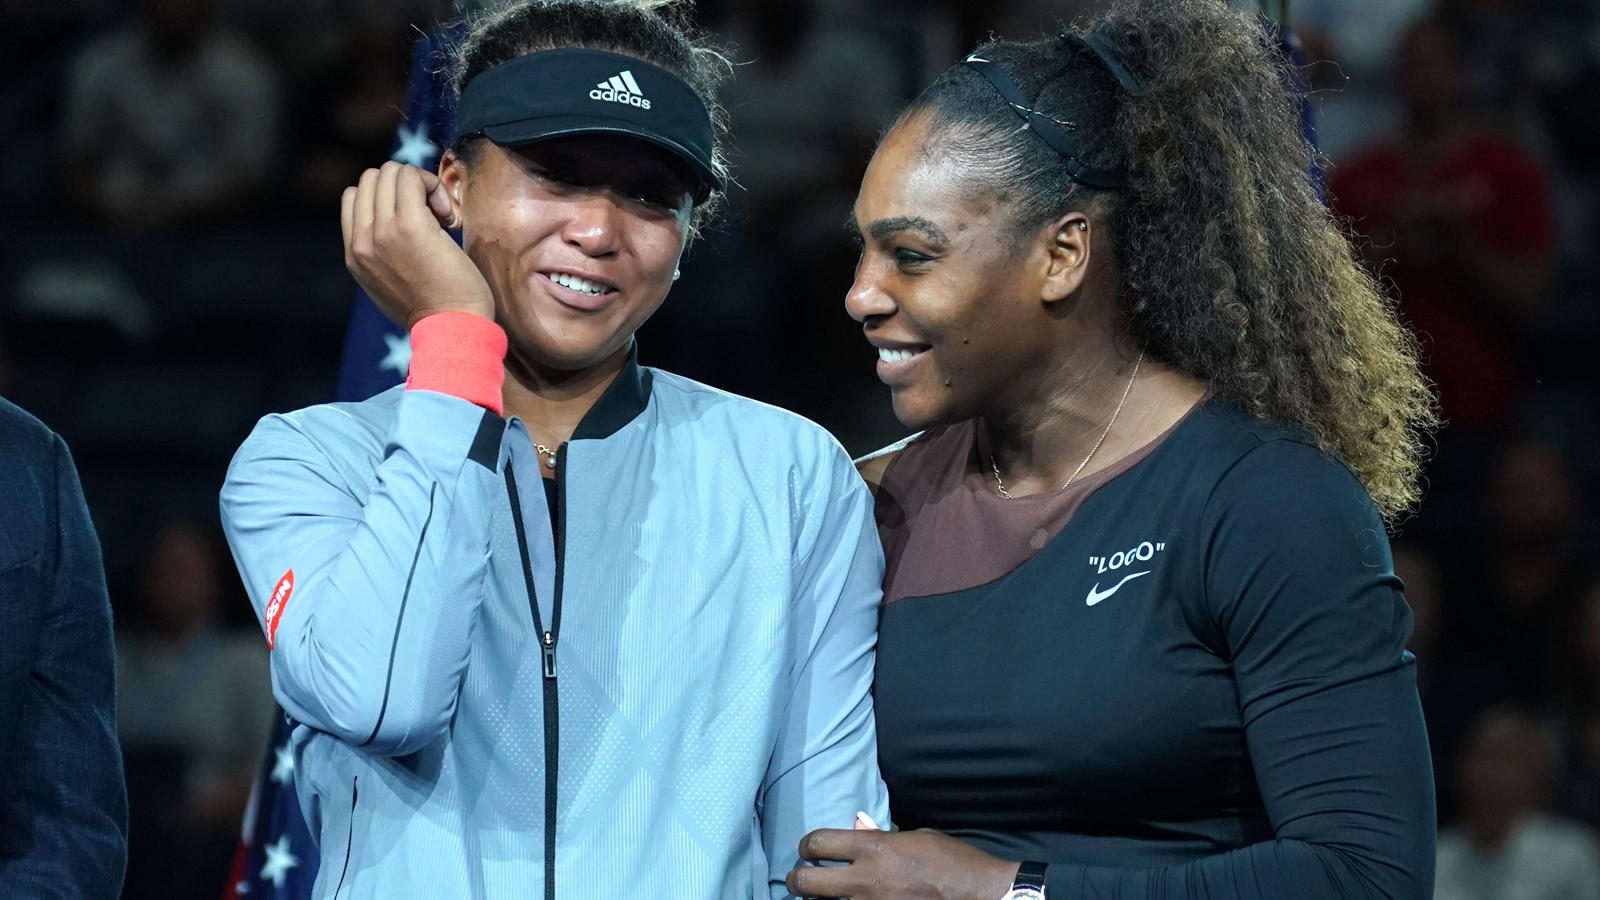 osaka-tops-serena-as-worlds-highest-paid-female-athlete